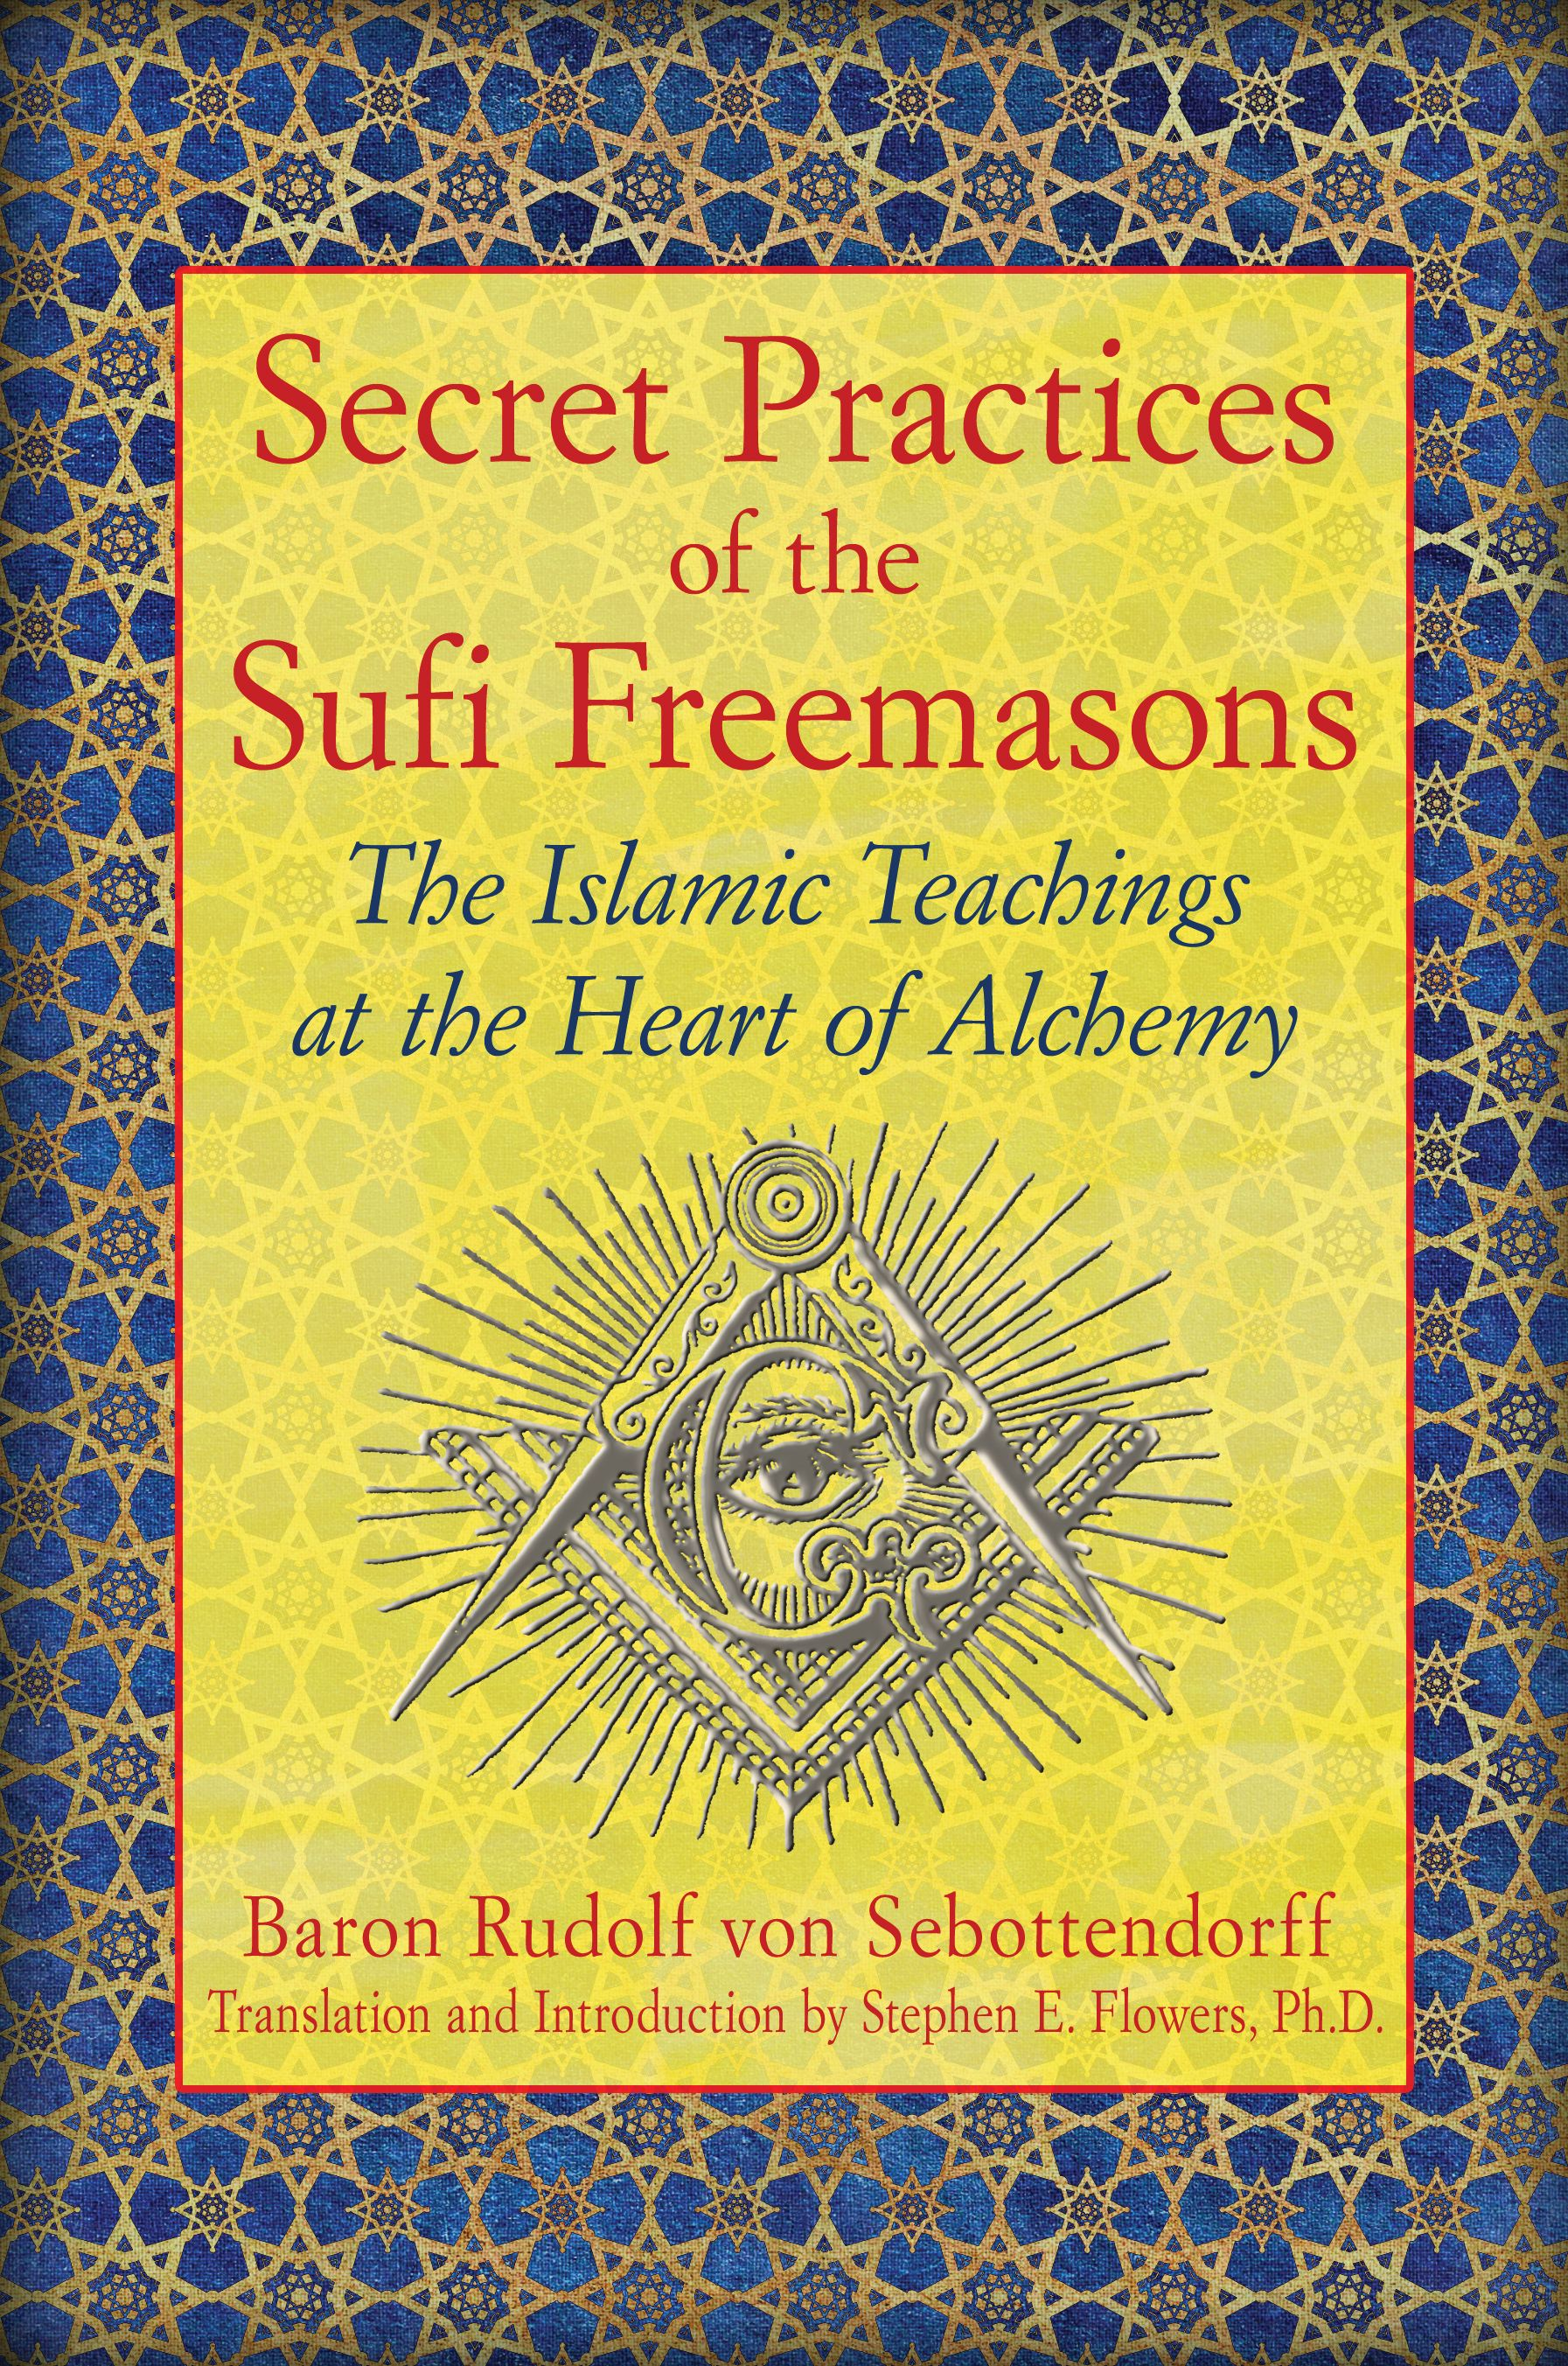 Secret-practices-of-the-sufi-freemasons-9781594774683_hr